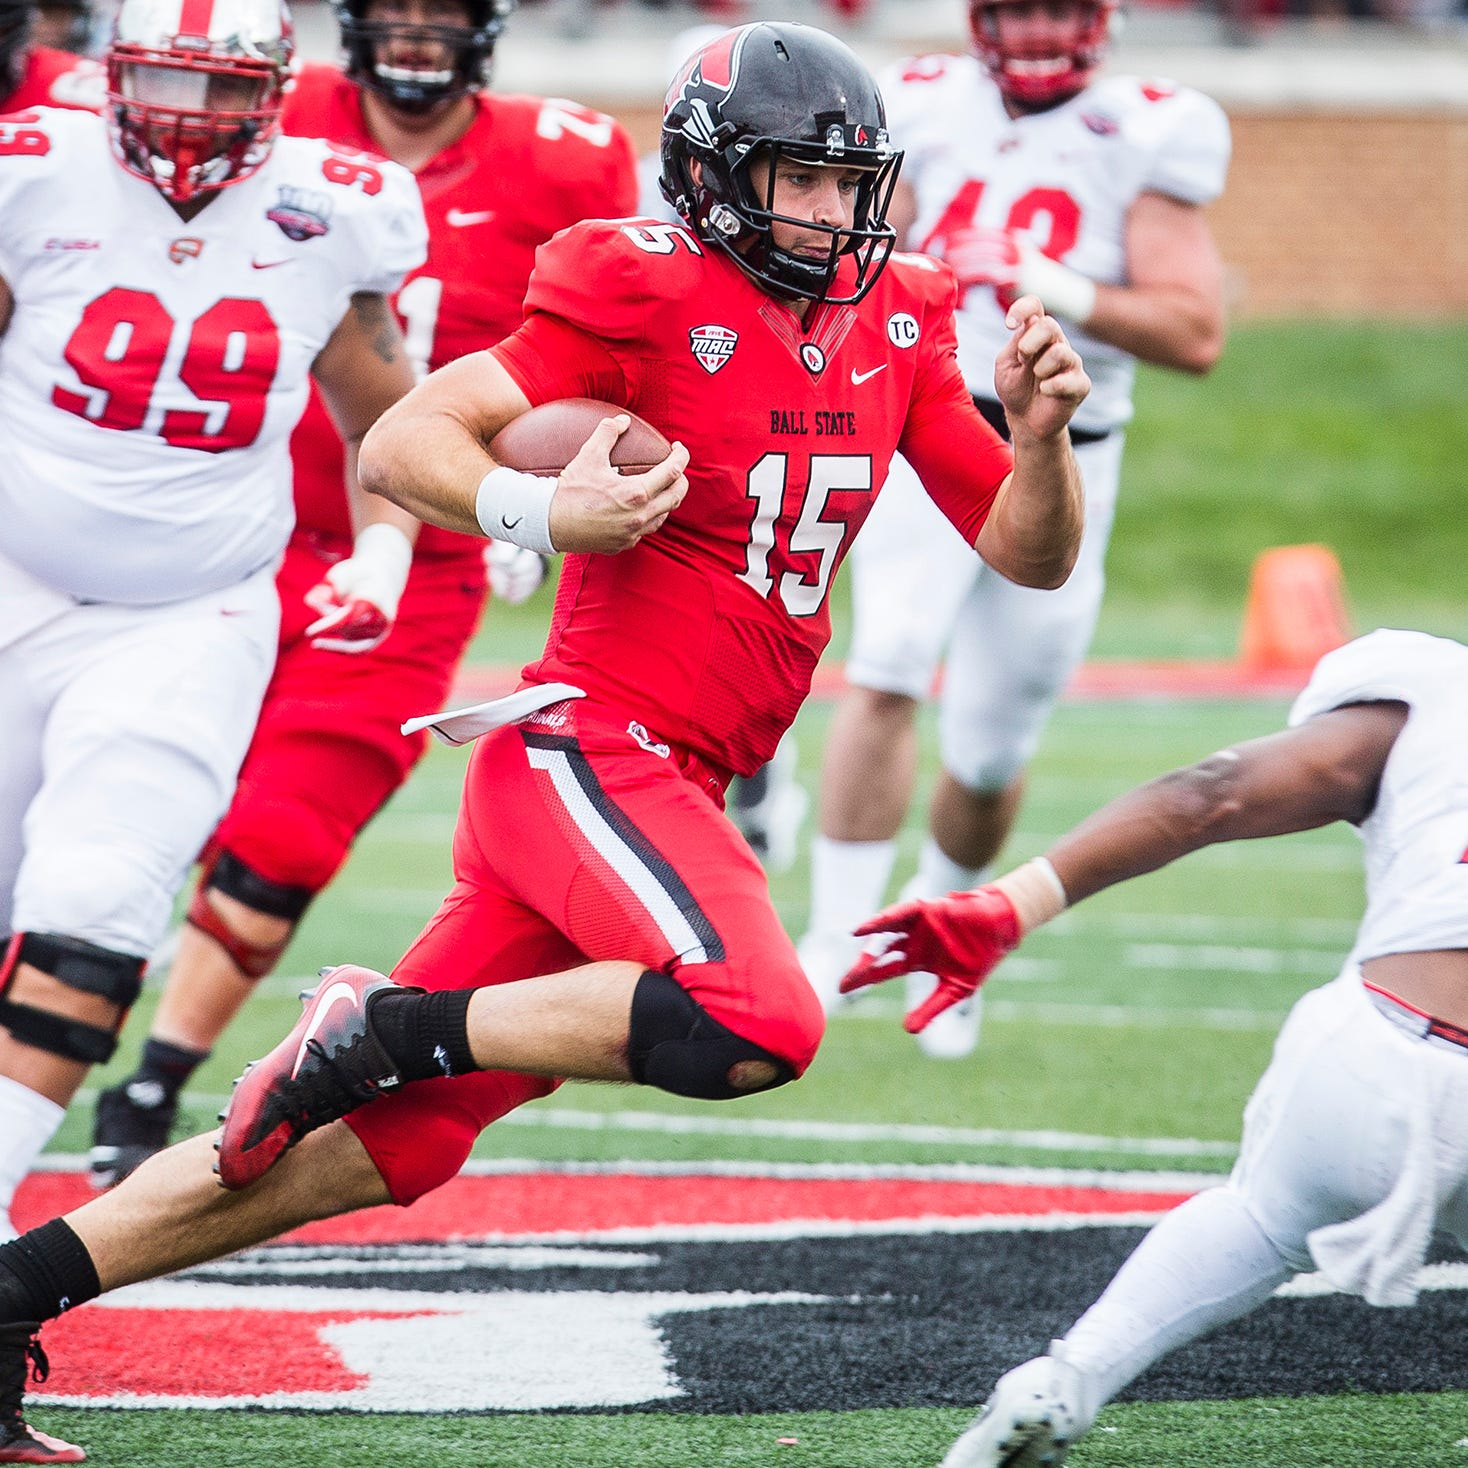 Ball State's Riley Neal runs the ball against Western Kentucky's defense during their game at Scheumann Stadium Saturday, Sept. 22, 2018.